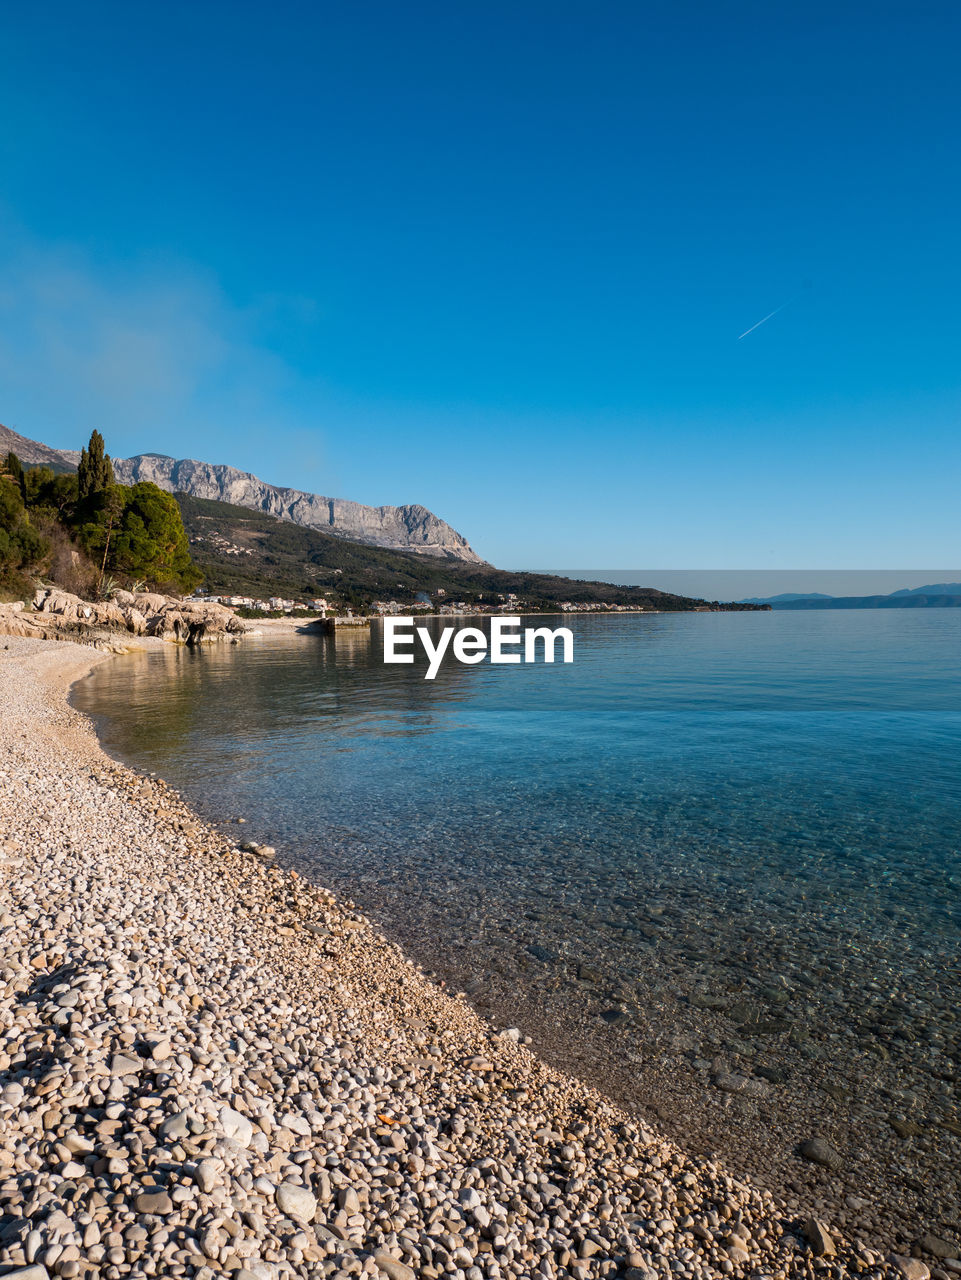 beach, sea, blue, beauty in nature, tranquil scene, nature, scenics, tranquility, water, outdoors, day, sky, no people, pebble beach